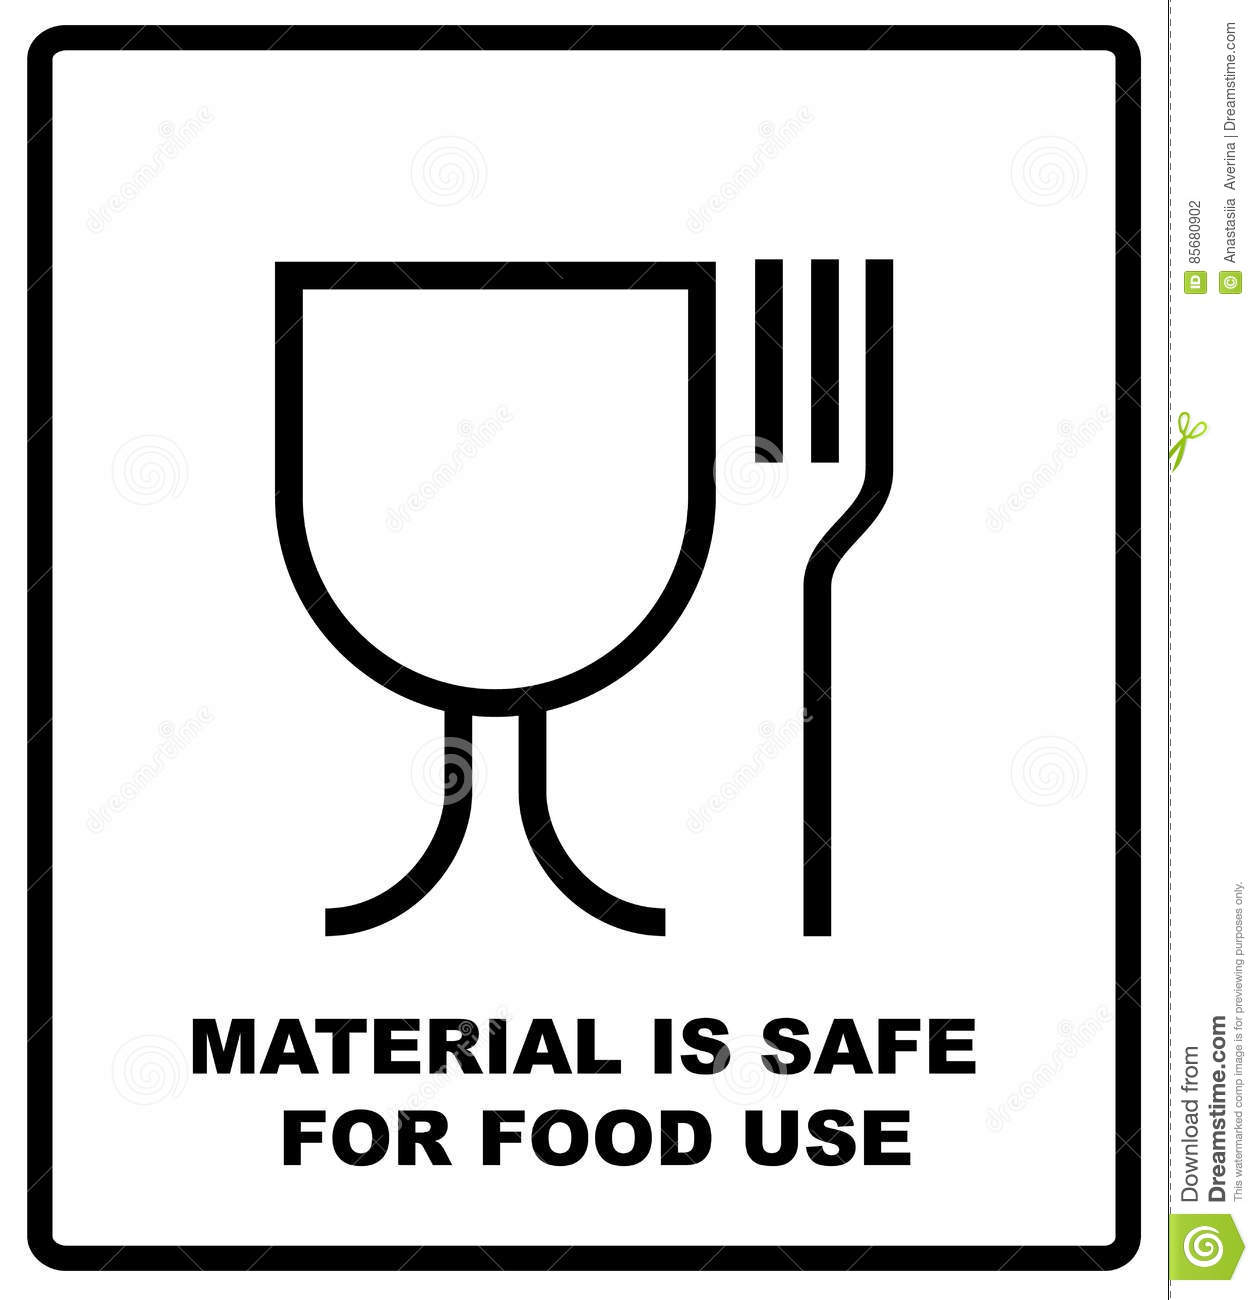 Spülmaschinengeeignet Symbol Material Is Safe For Food Use Icon Fork And Glass Simple